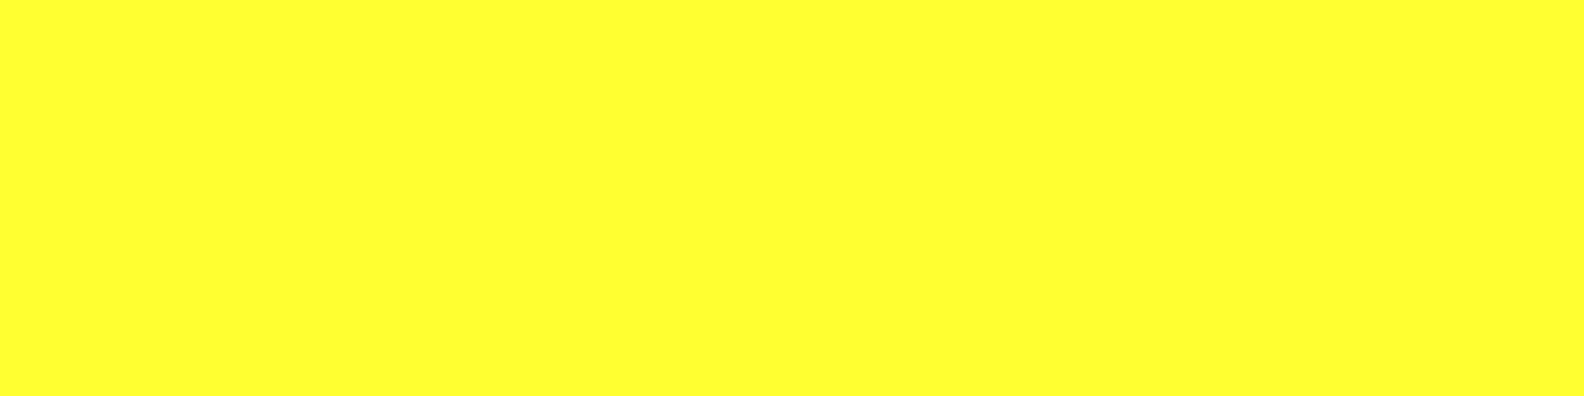 1584x396 Daffodil Solid Color Background